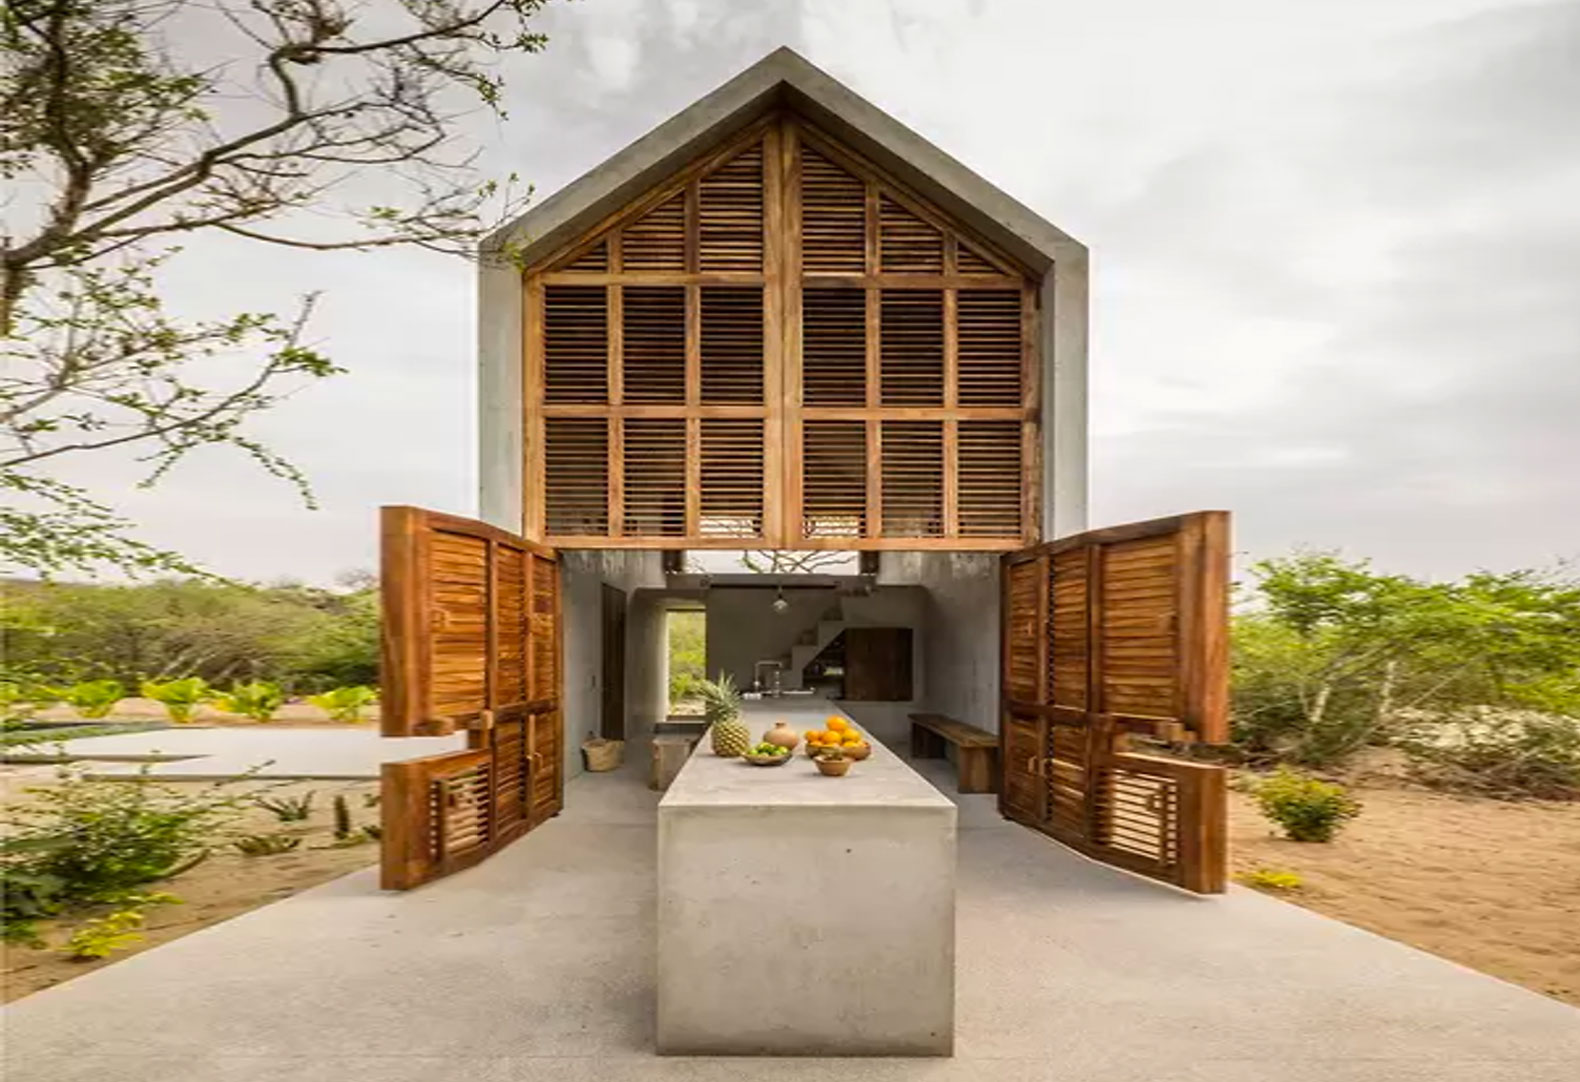 Go way, way off grid at this amazing tiny house Airbnb in Oaxaca